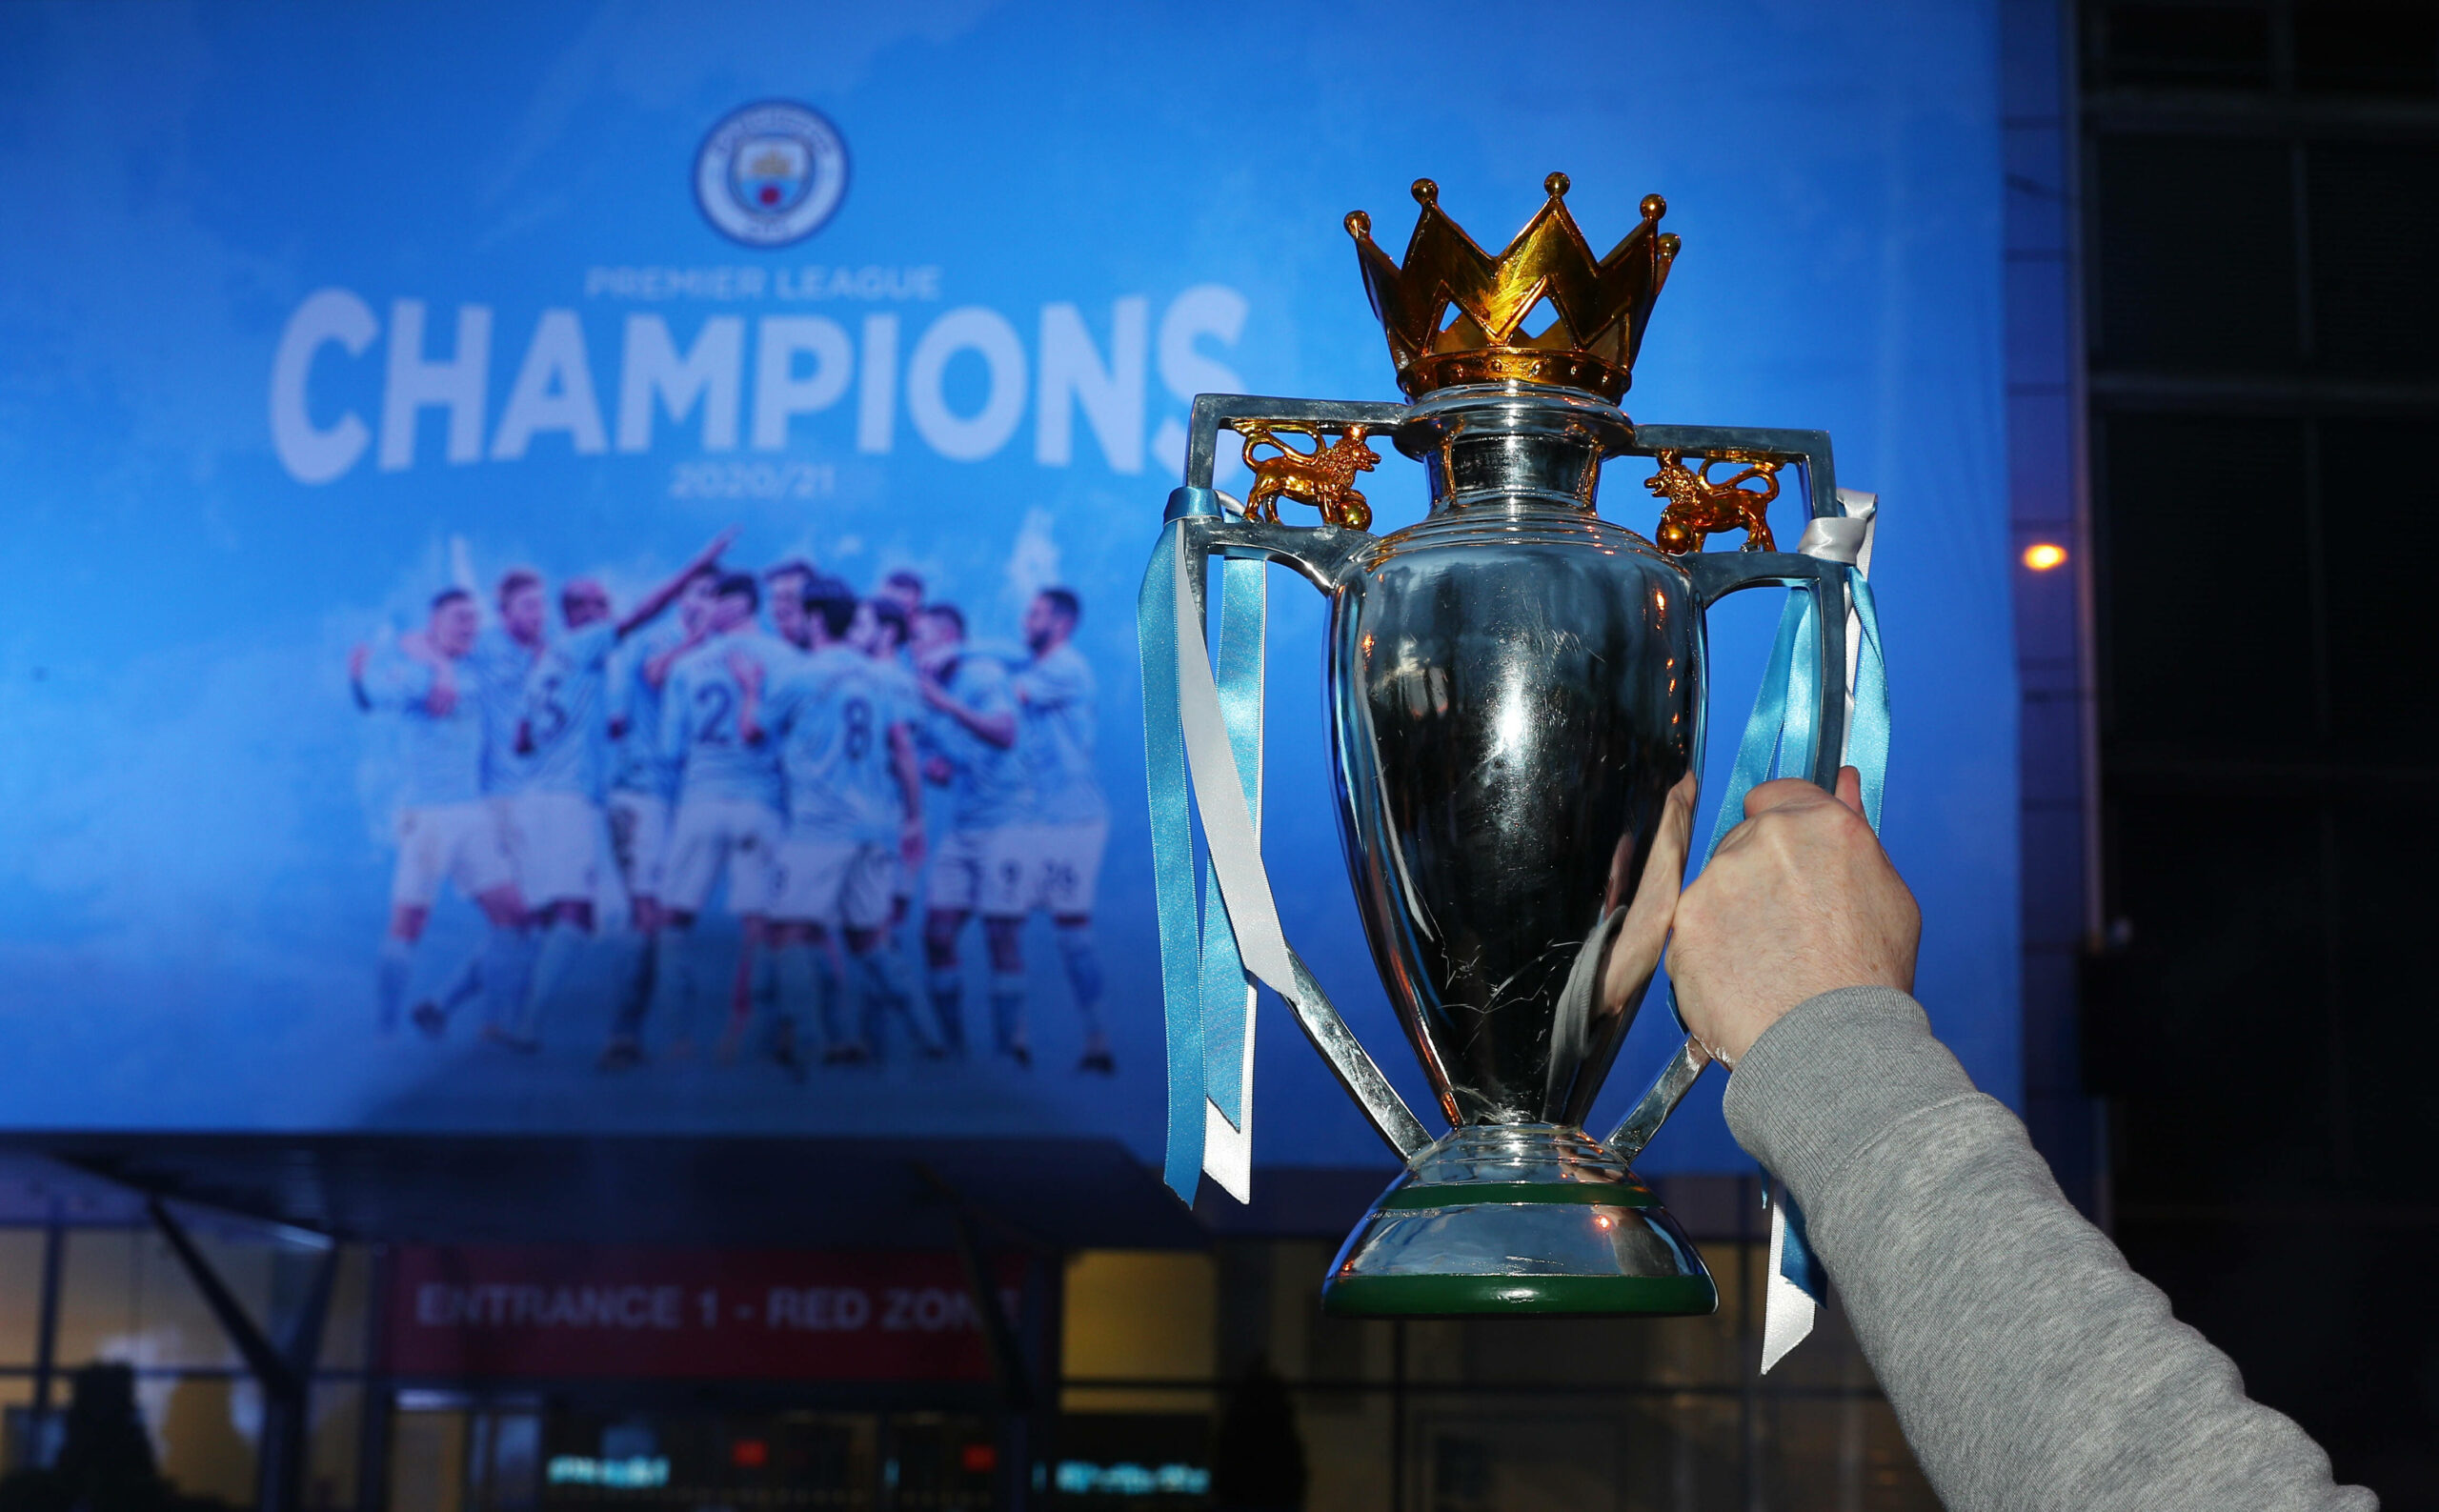 Peak amongst peaks: how this title win compares to prior triumphs for City